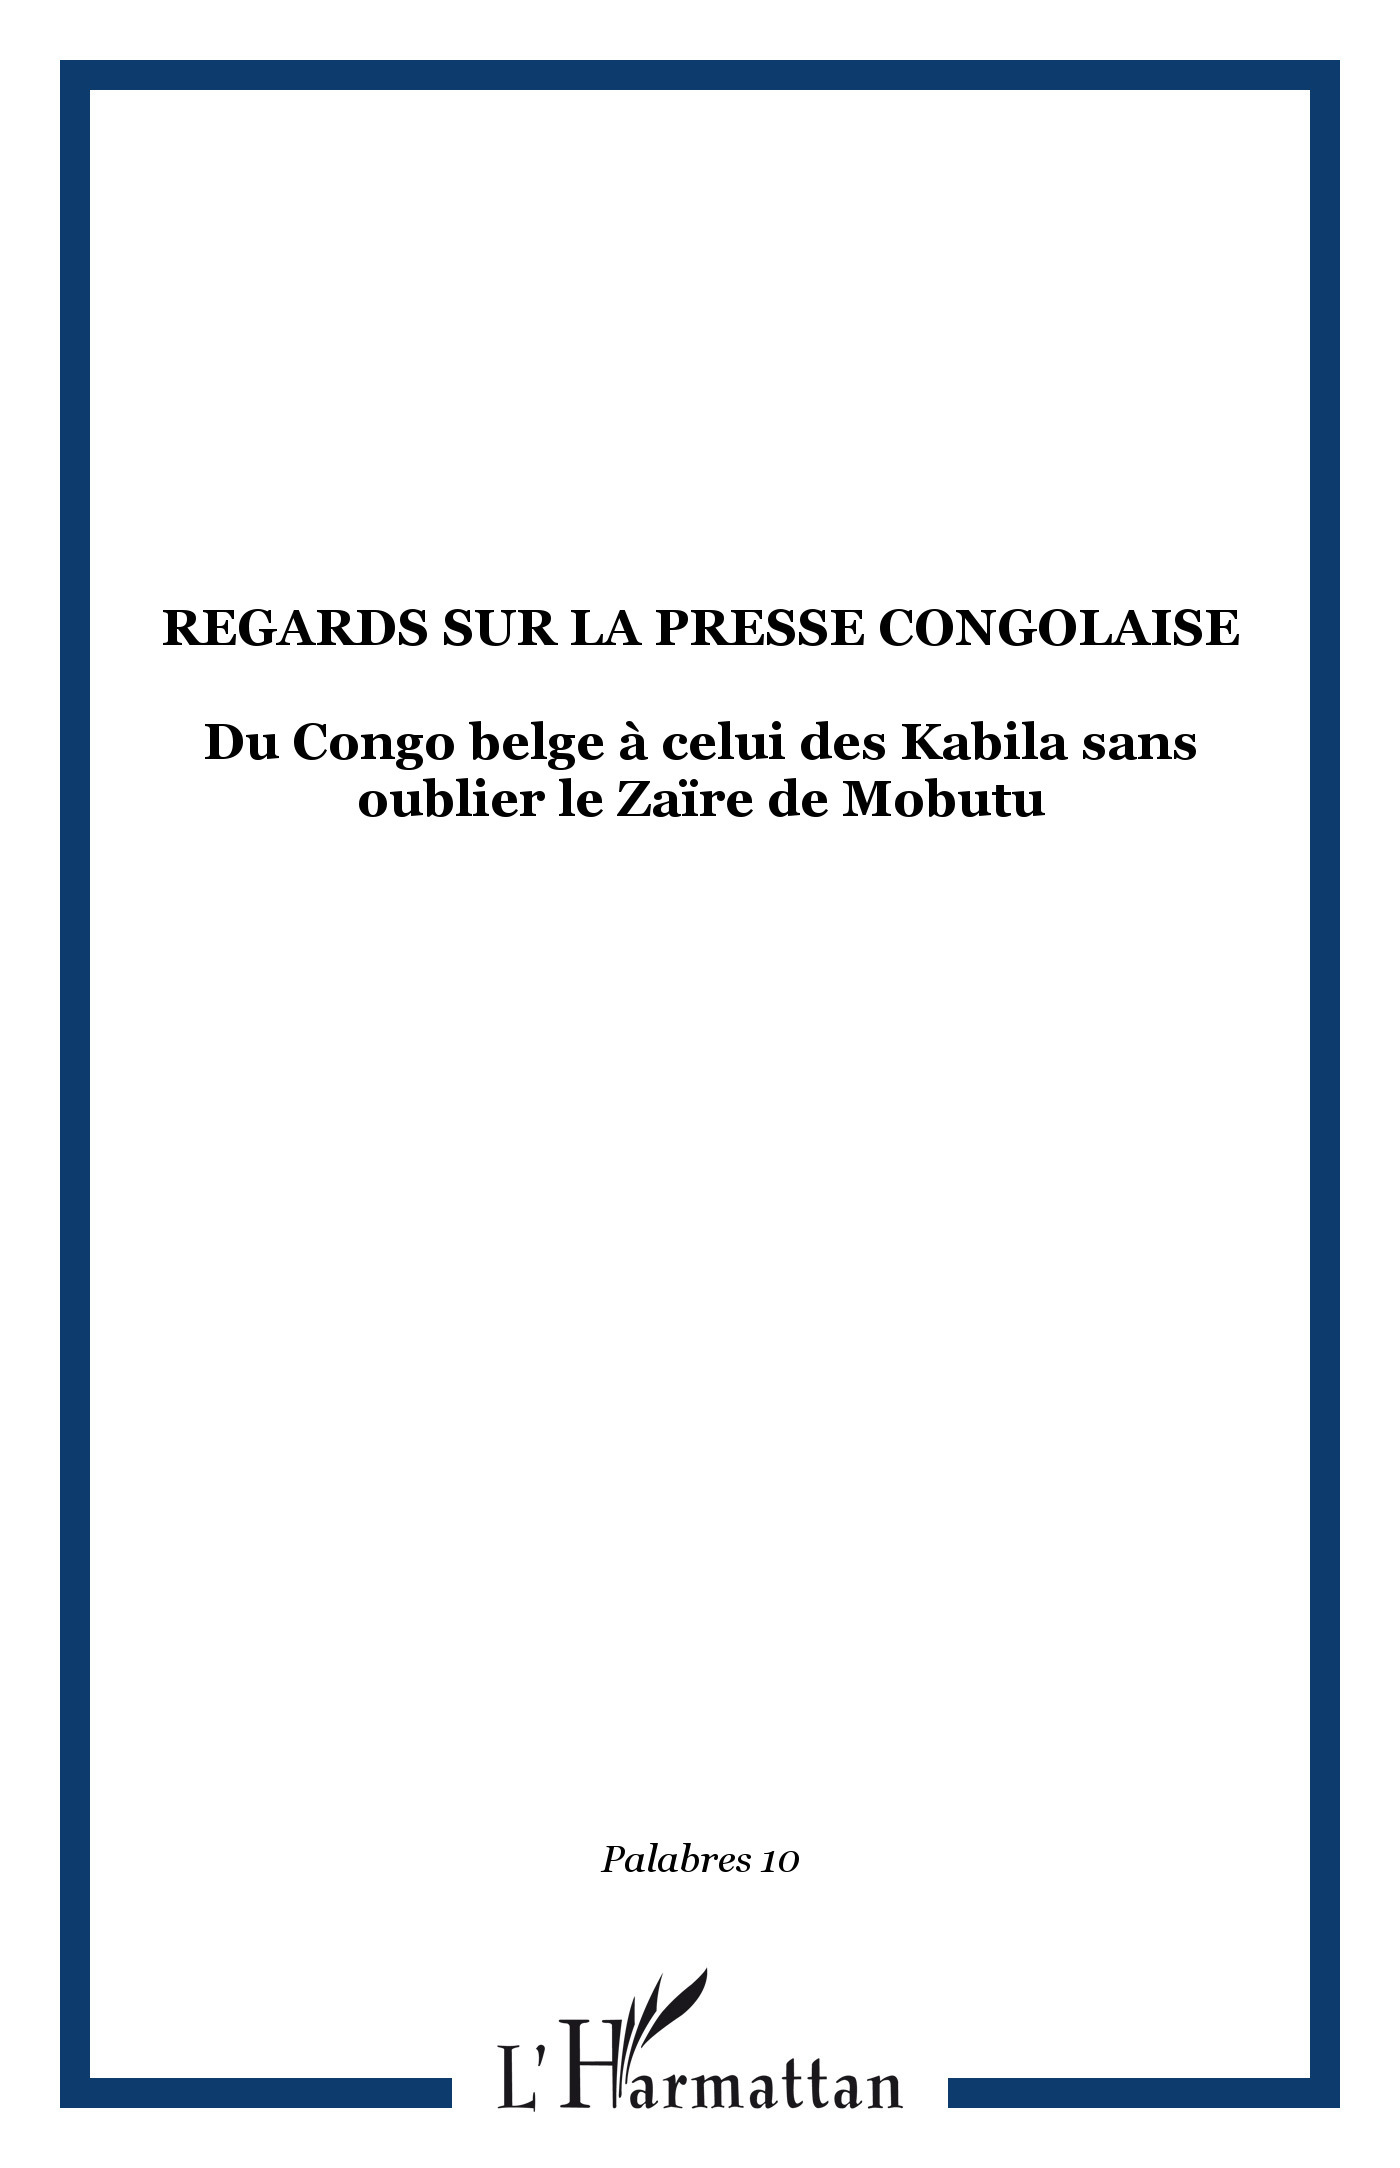 Regards sur la presse congolaise